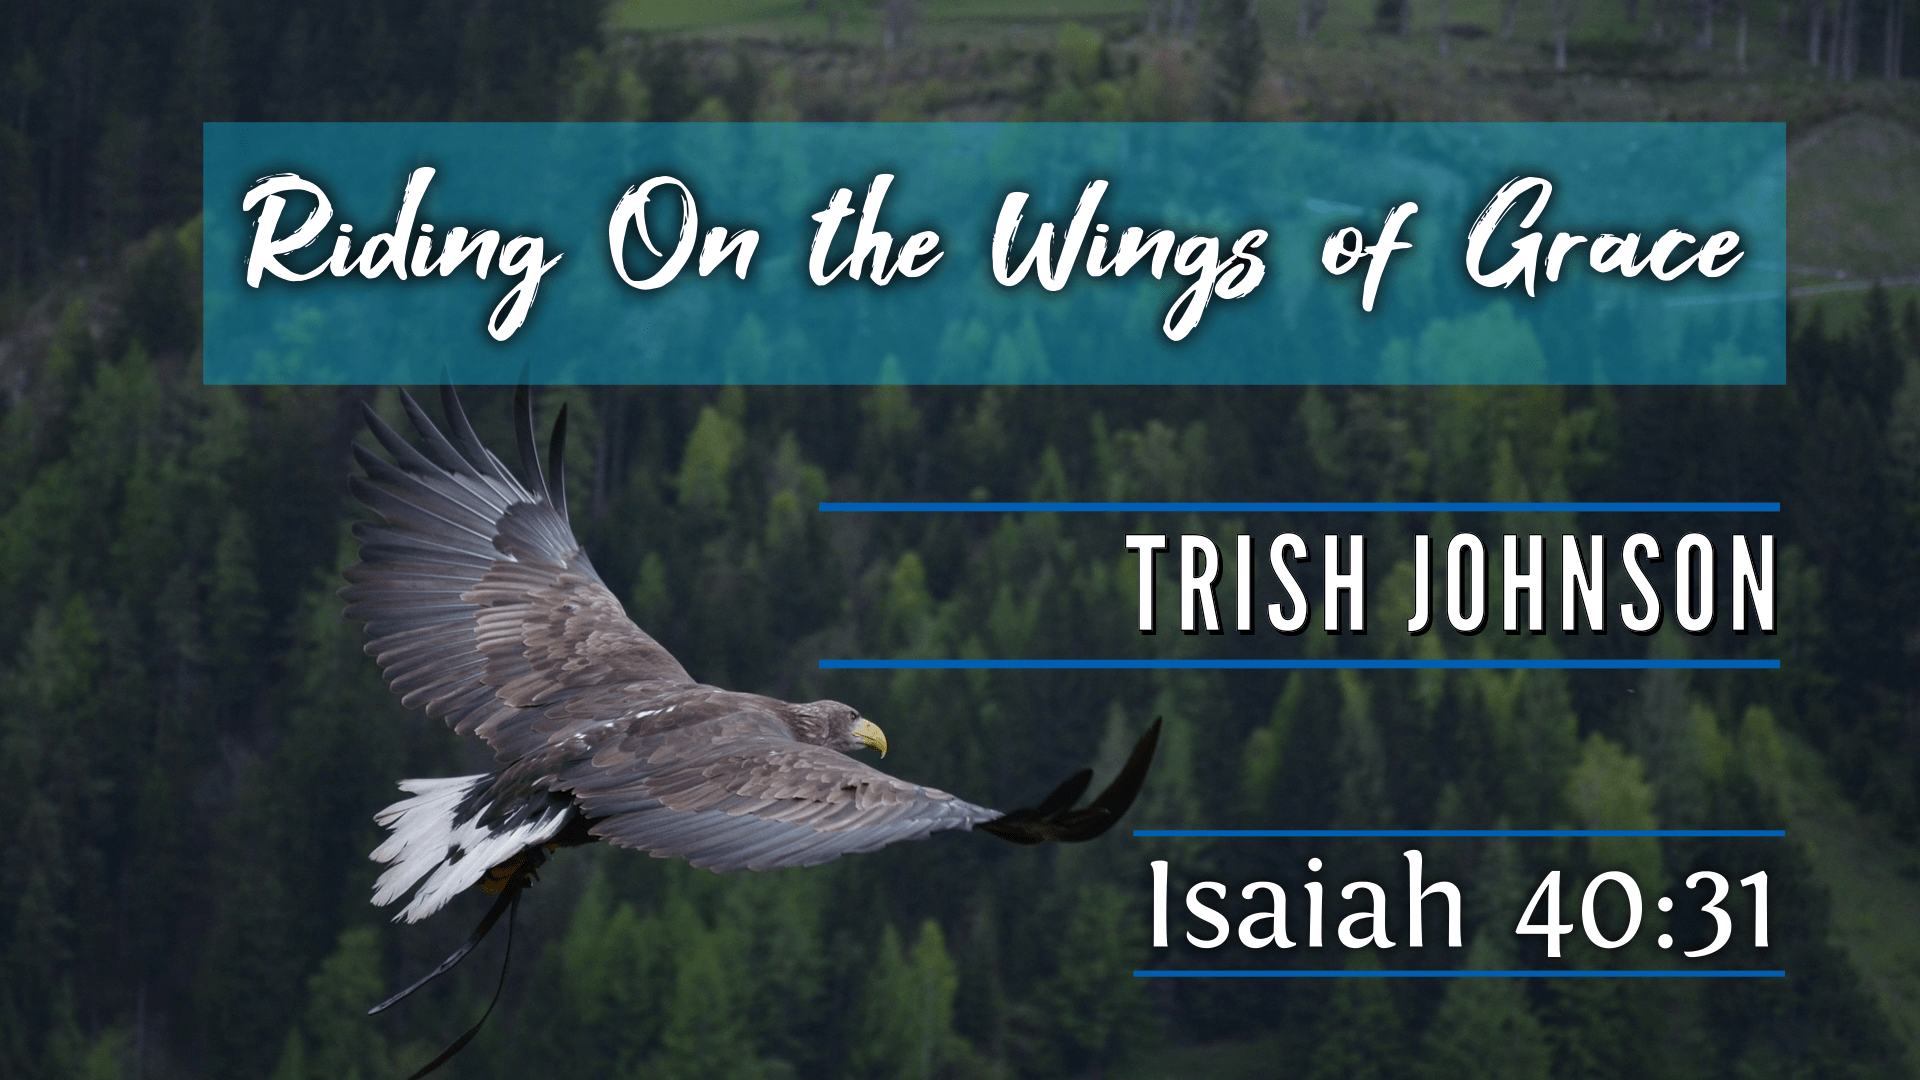 Riding on the Wings of Grace - Trish Johnson